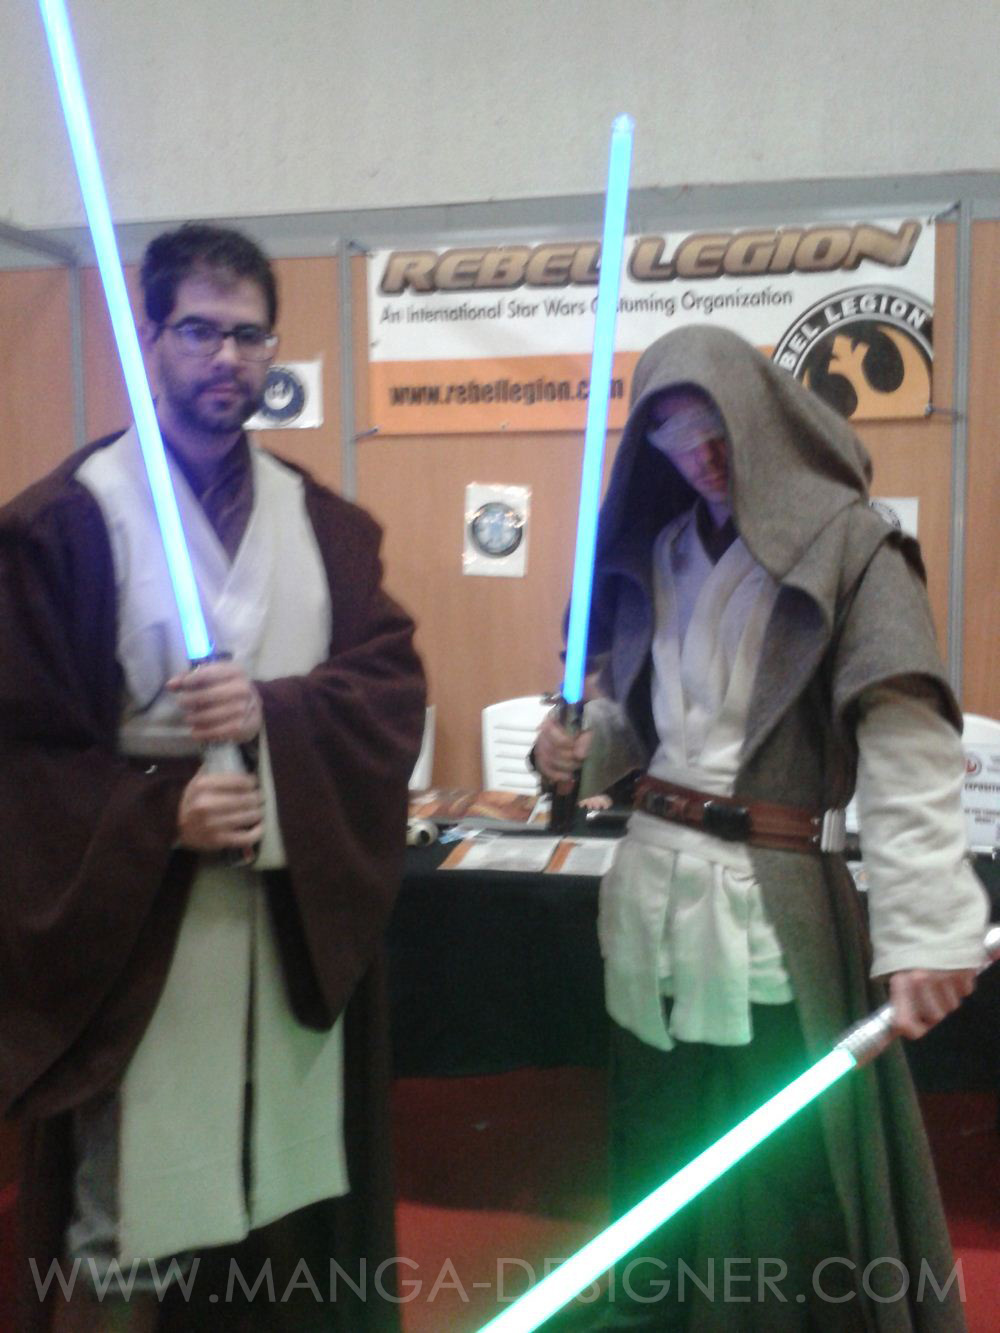 toulouse-game-show-starwars-3